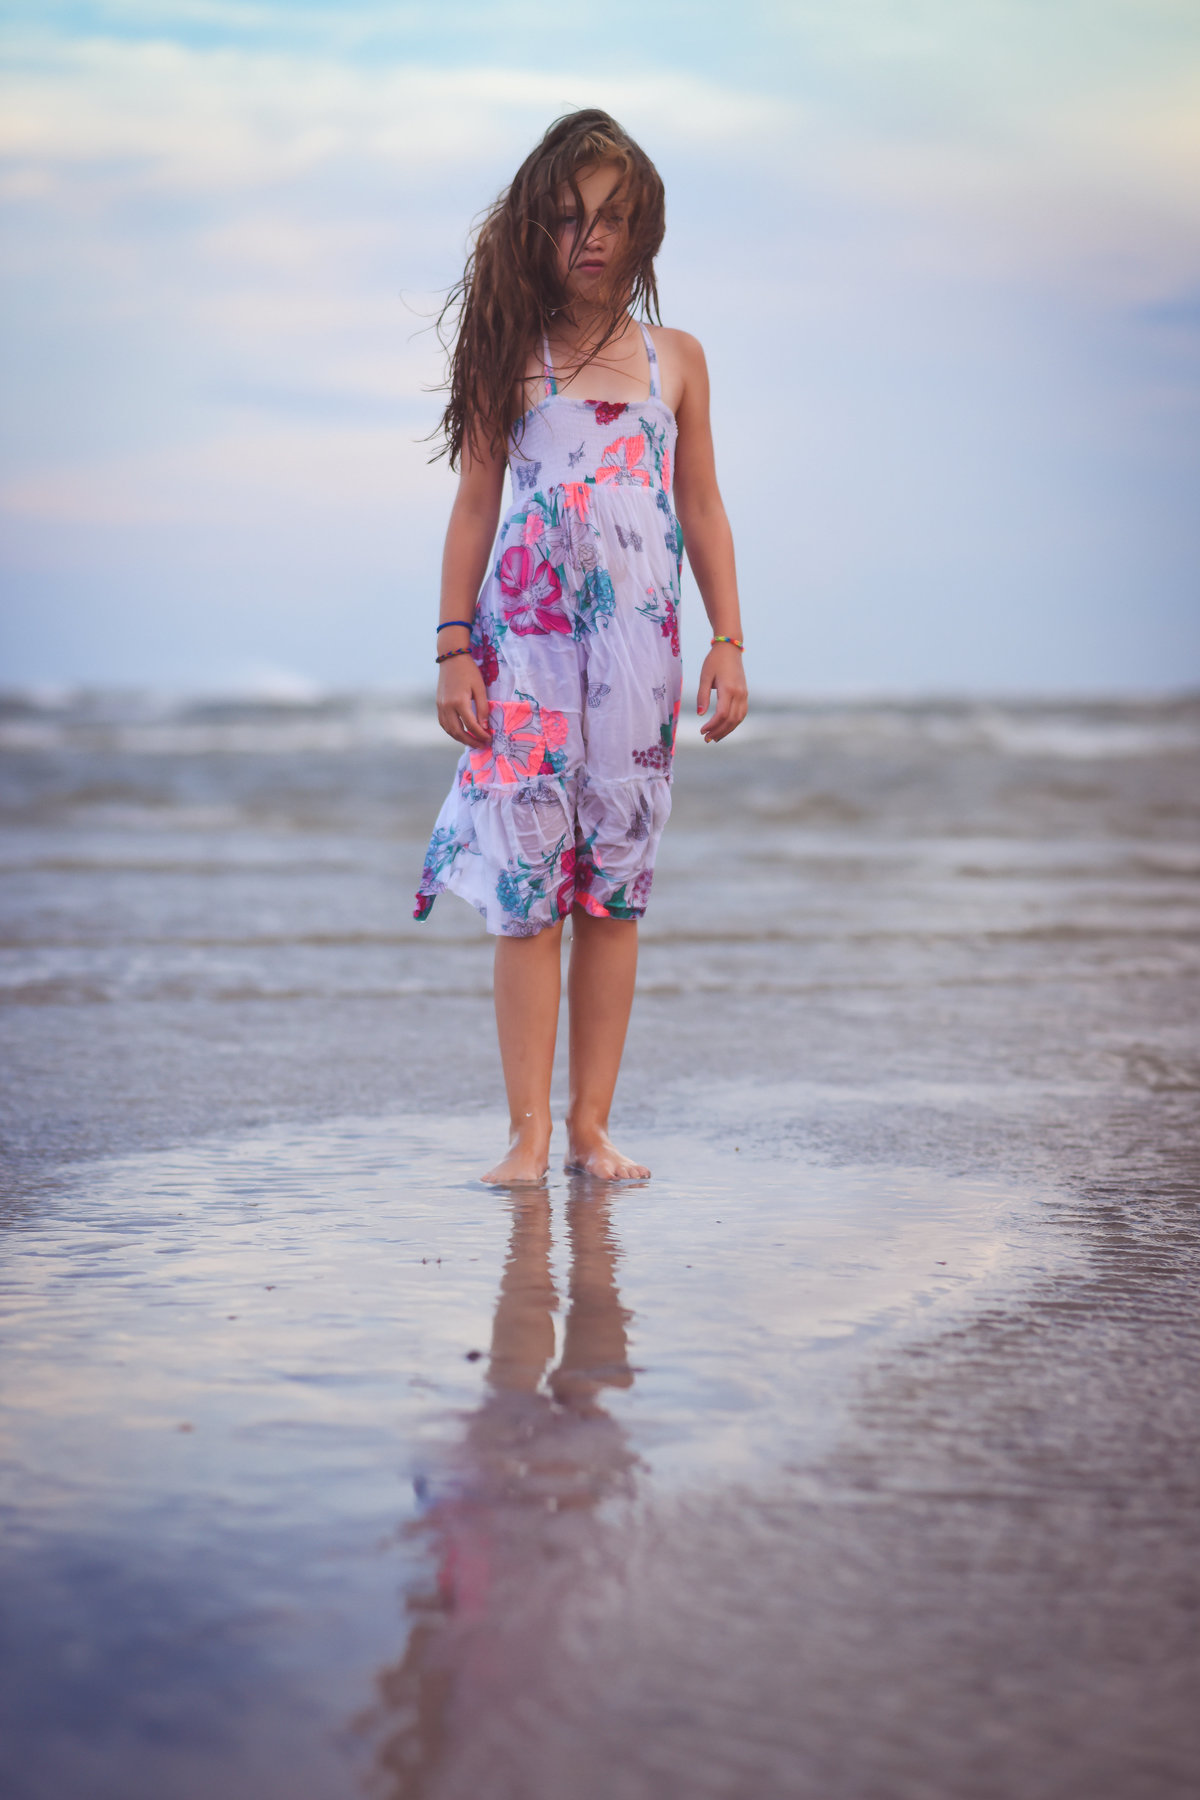 girl beach portrait photography bend oregon photographer 1